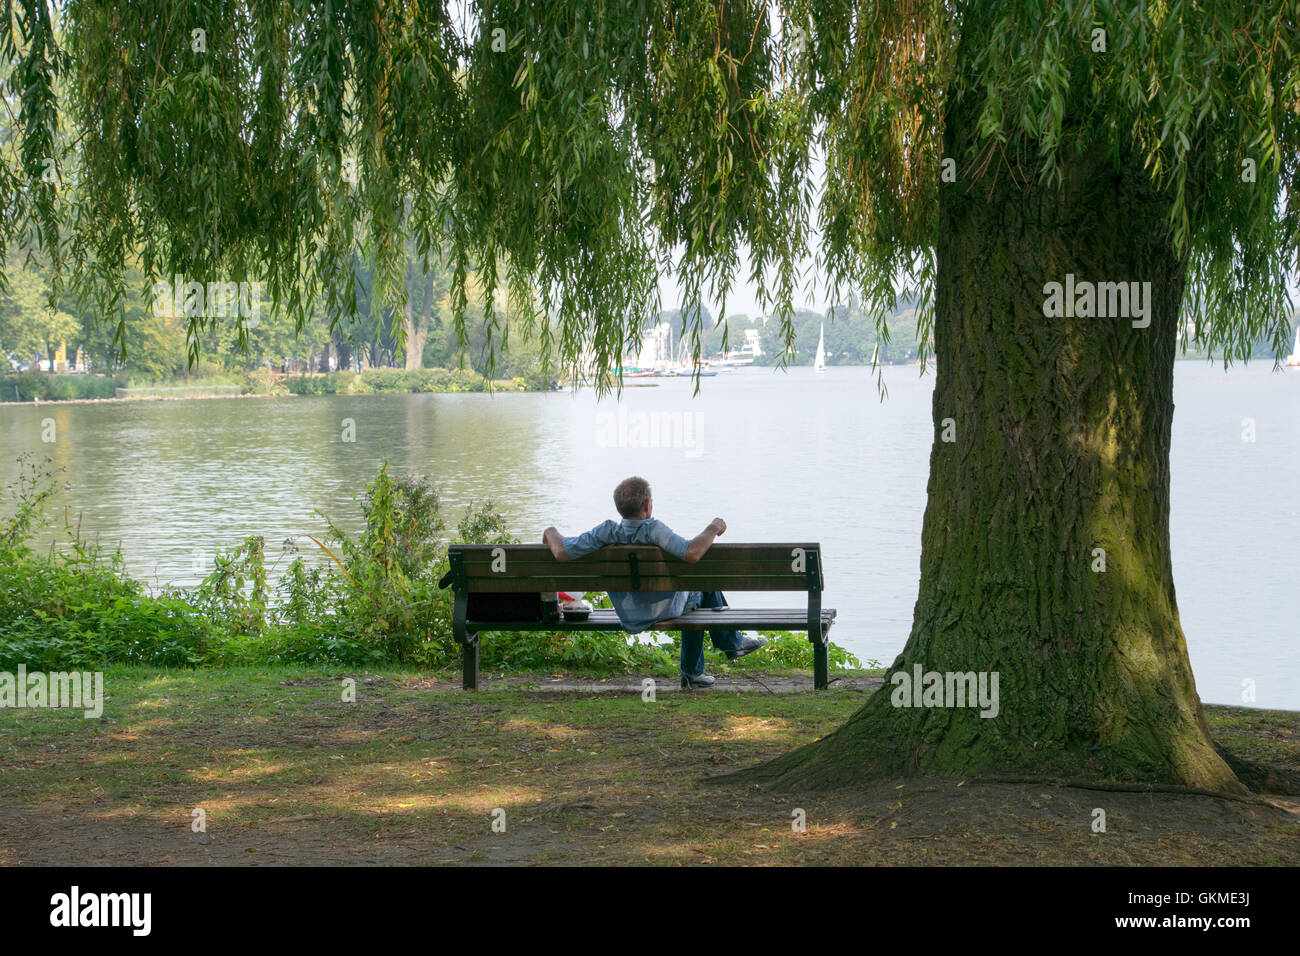 Man Relaxing On A Park Bench With Lake And Big Tree Trunk